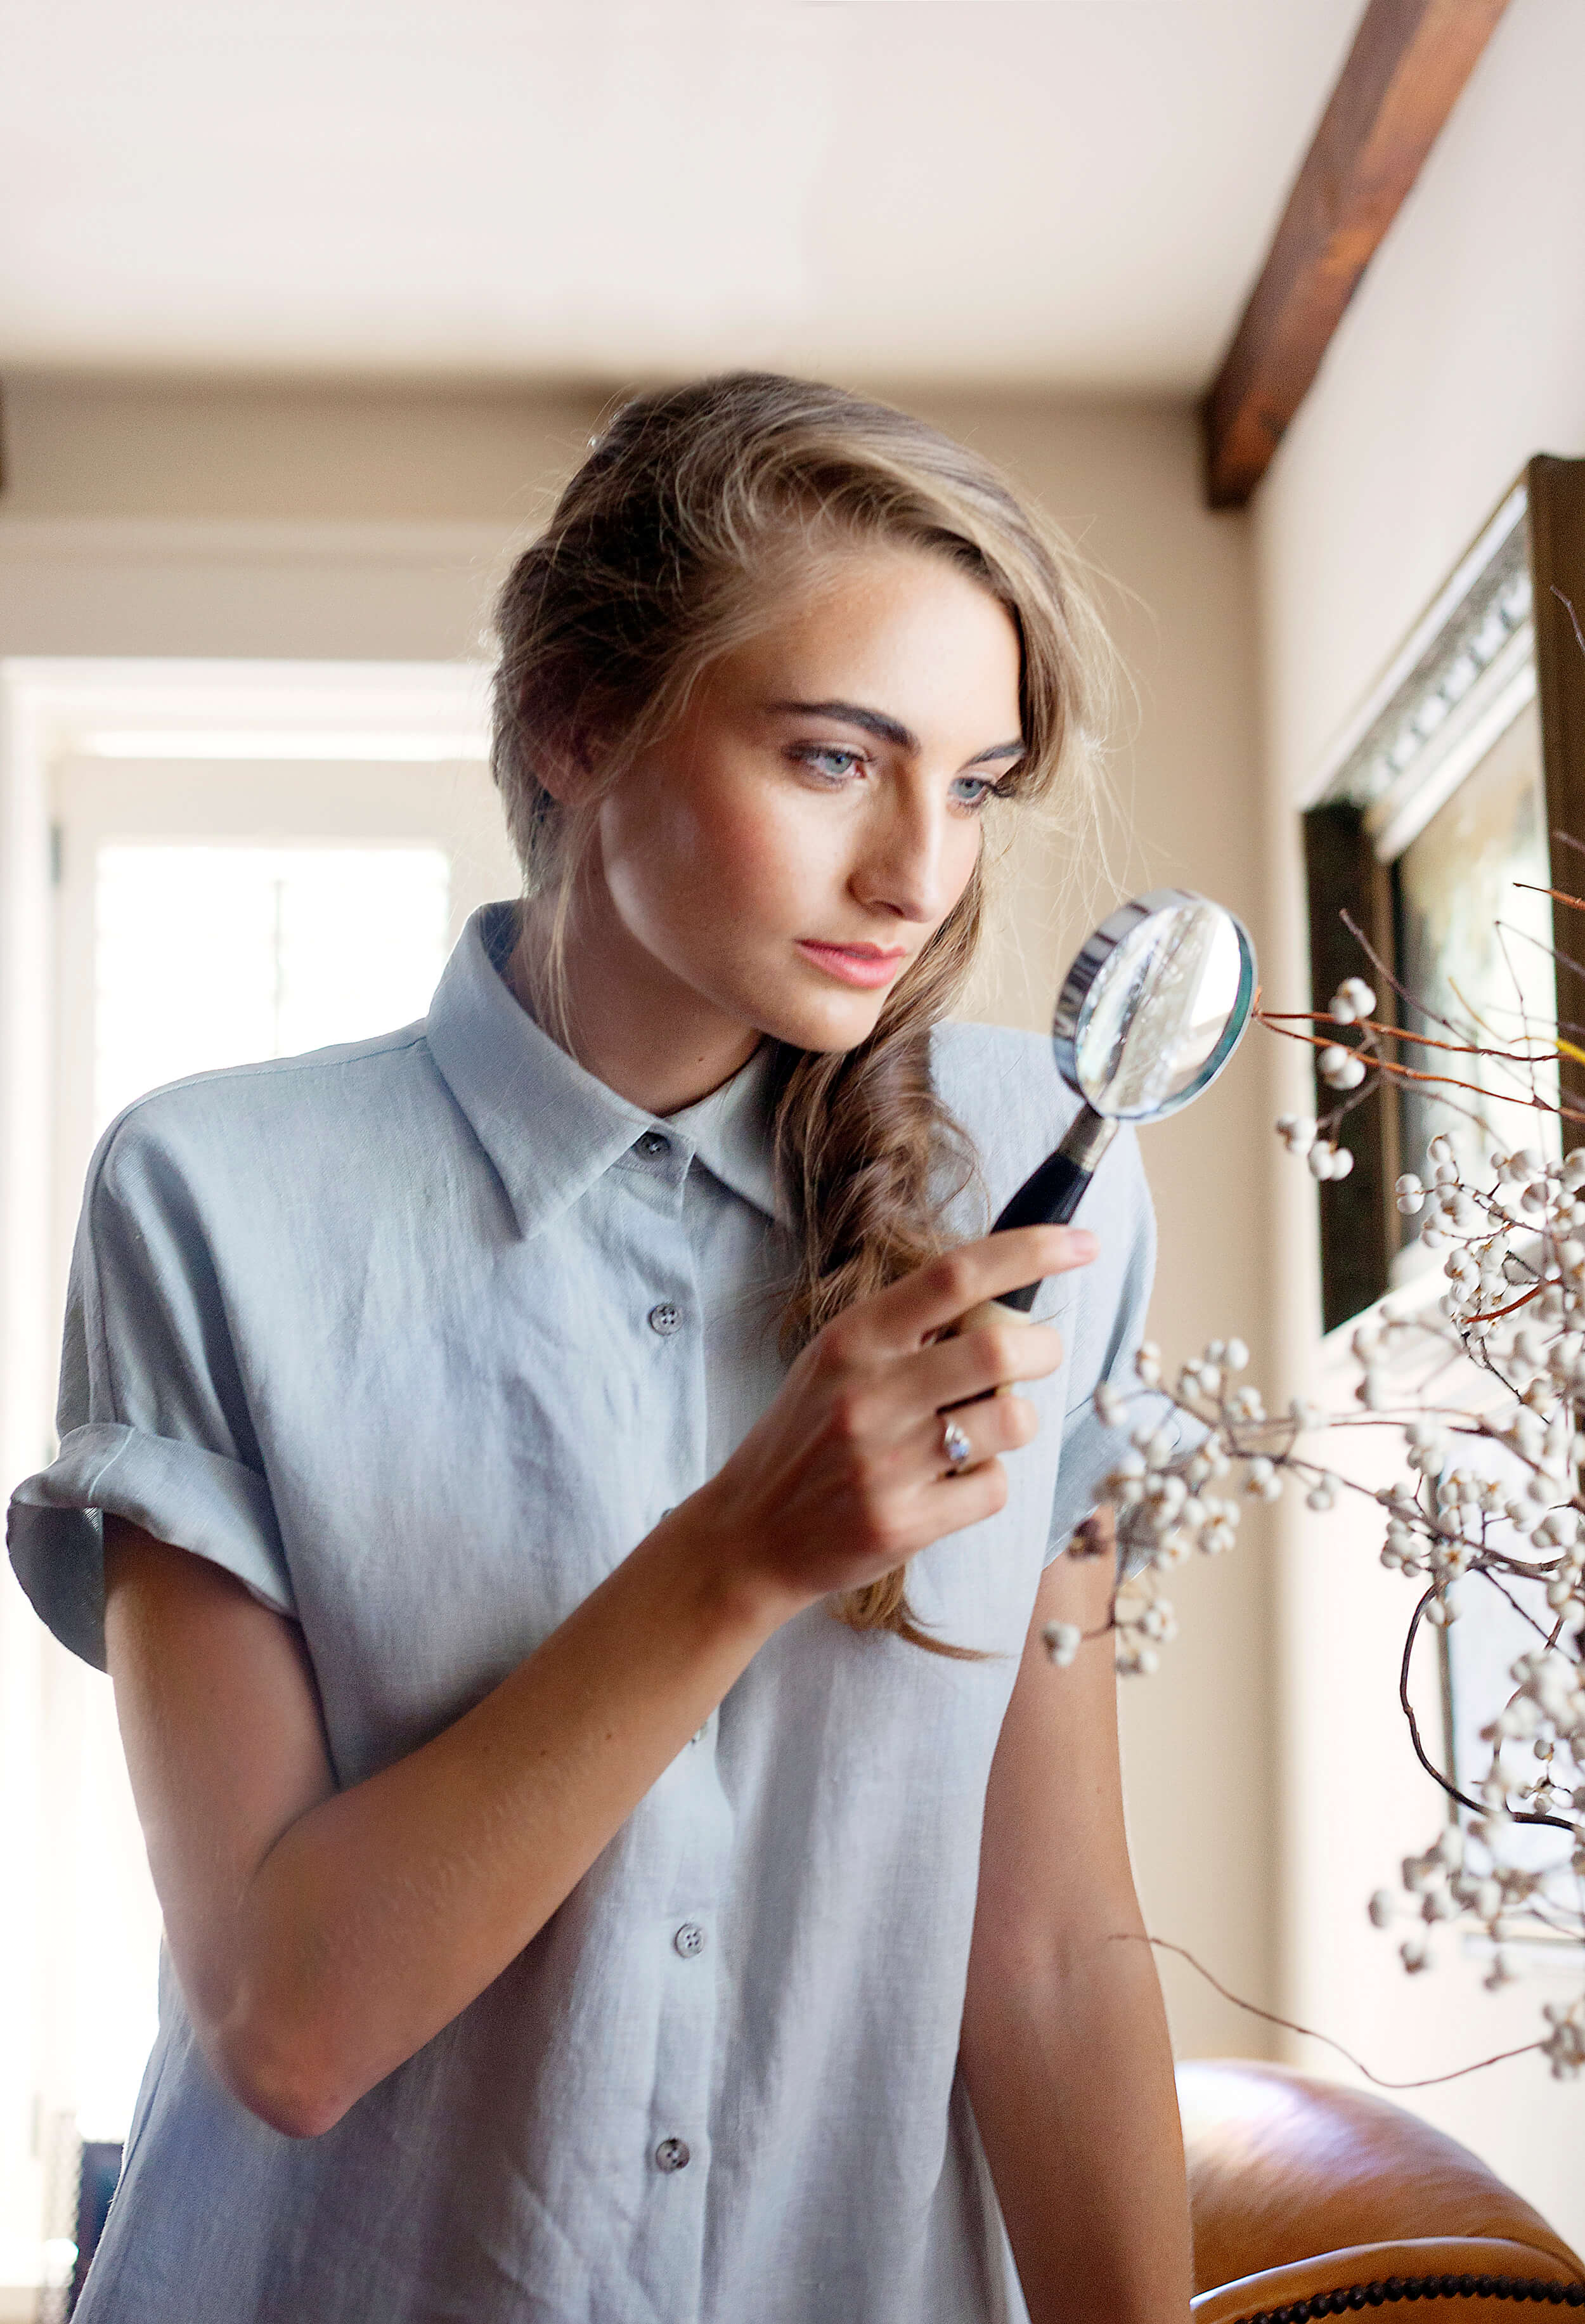 Photograph of a model looking through a magnifying glass by Margaret Wright Photoraphy